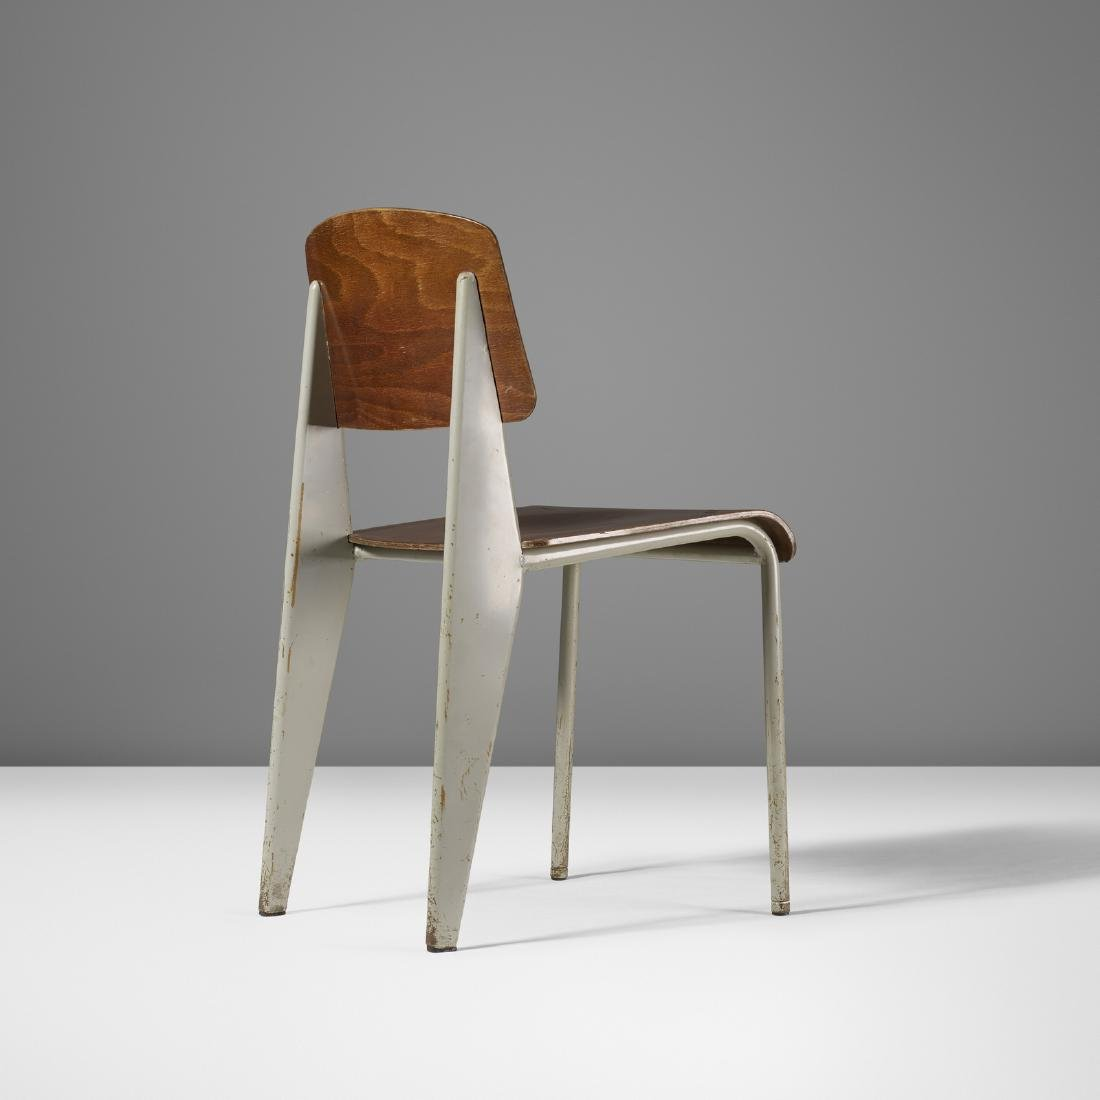 Jean  Prouve, 'Semi-metal' chair model no. 305 from the